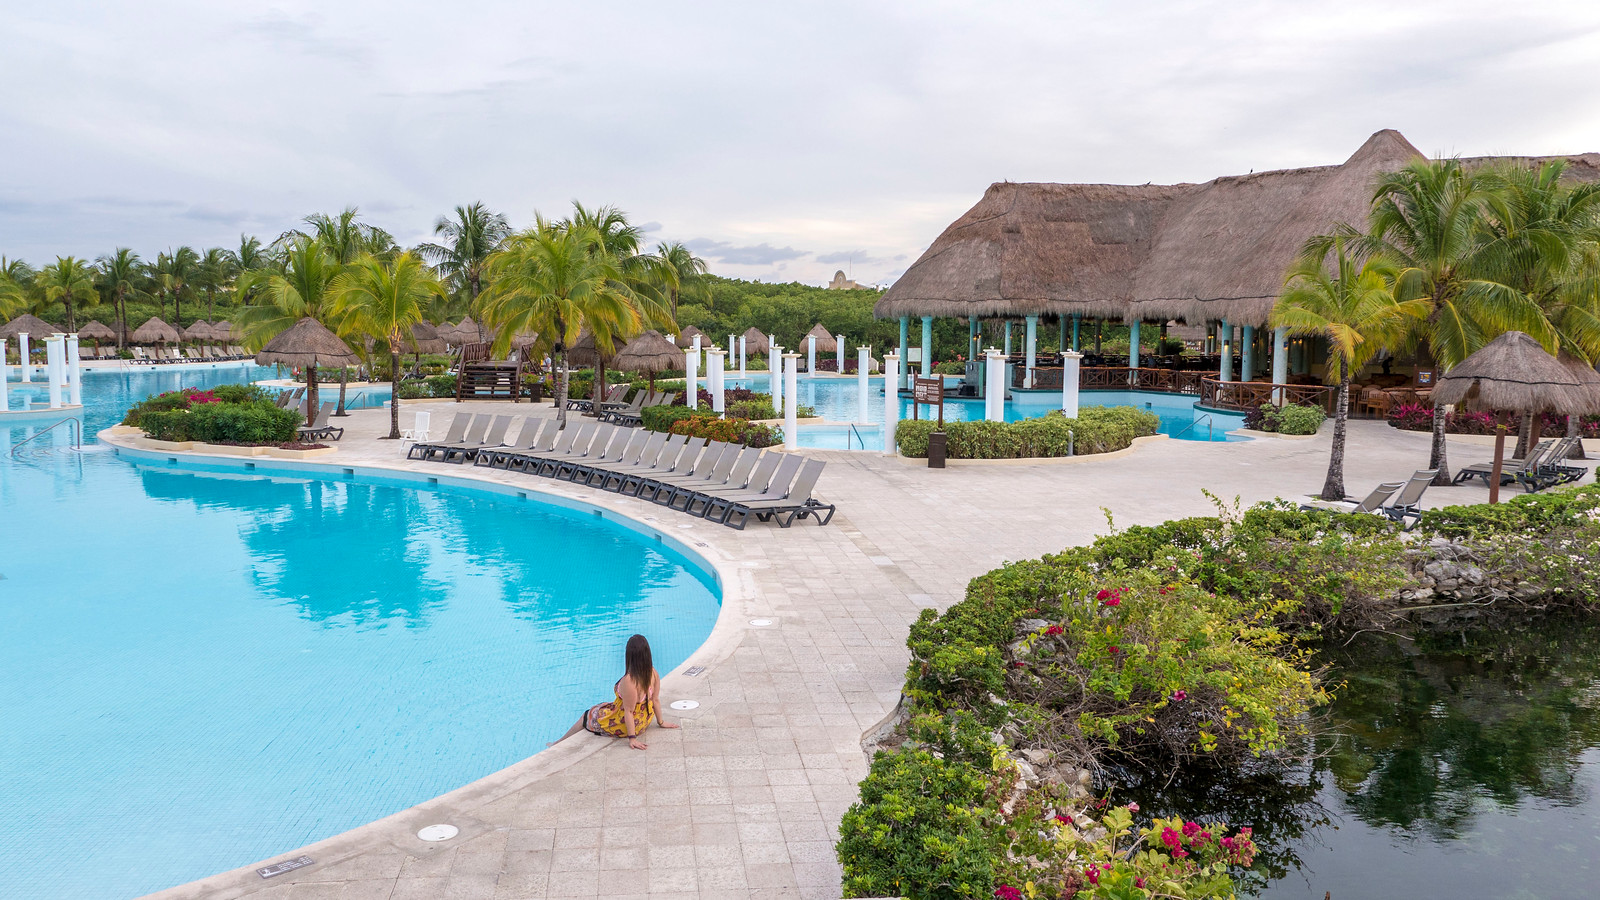 Grand Palladium Riviera Maya: Our In-Depth Guide